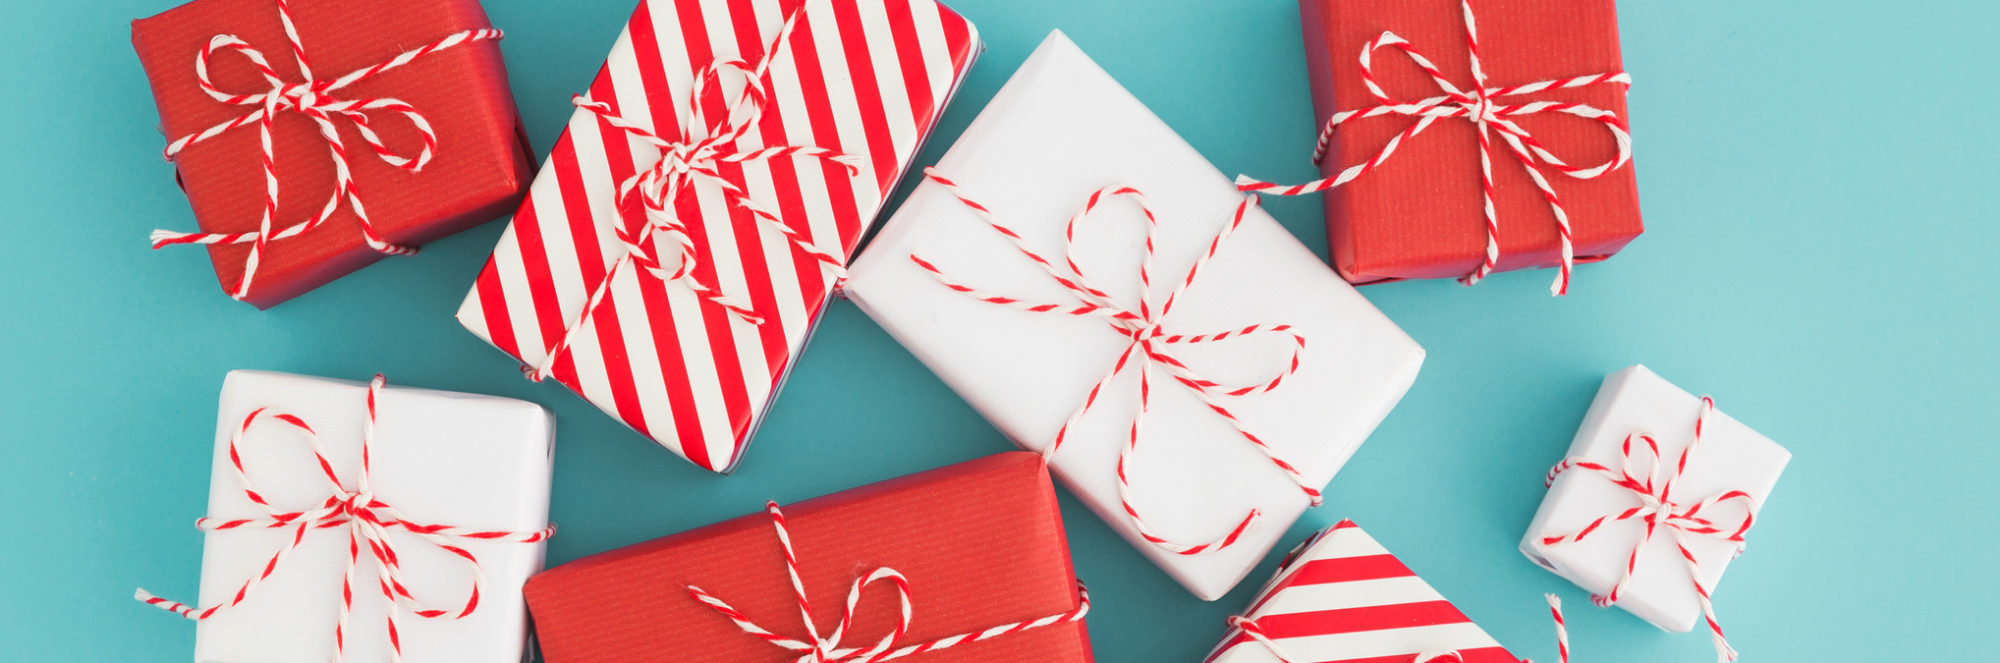 Planning on making a holiday donation? Check out this nonprofit gift guide.